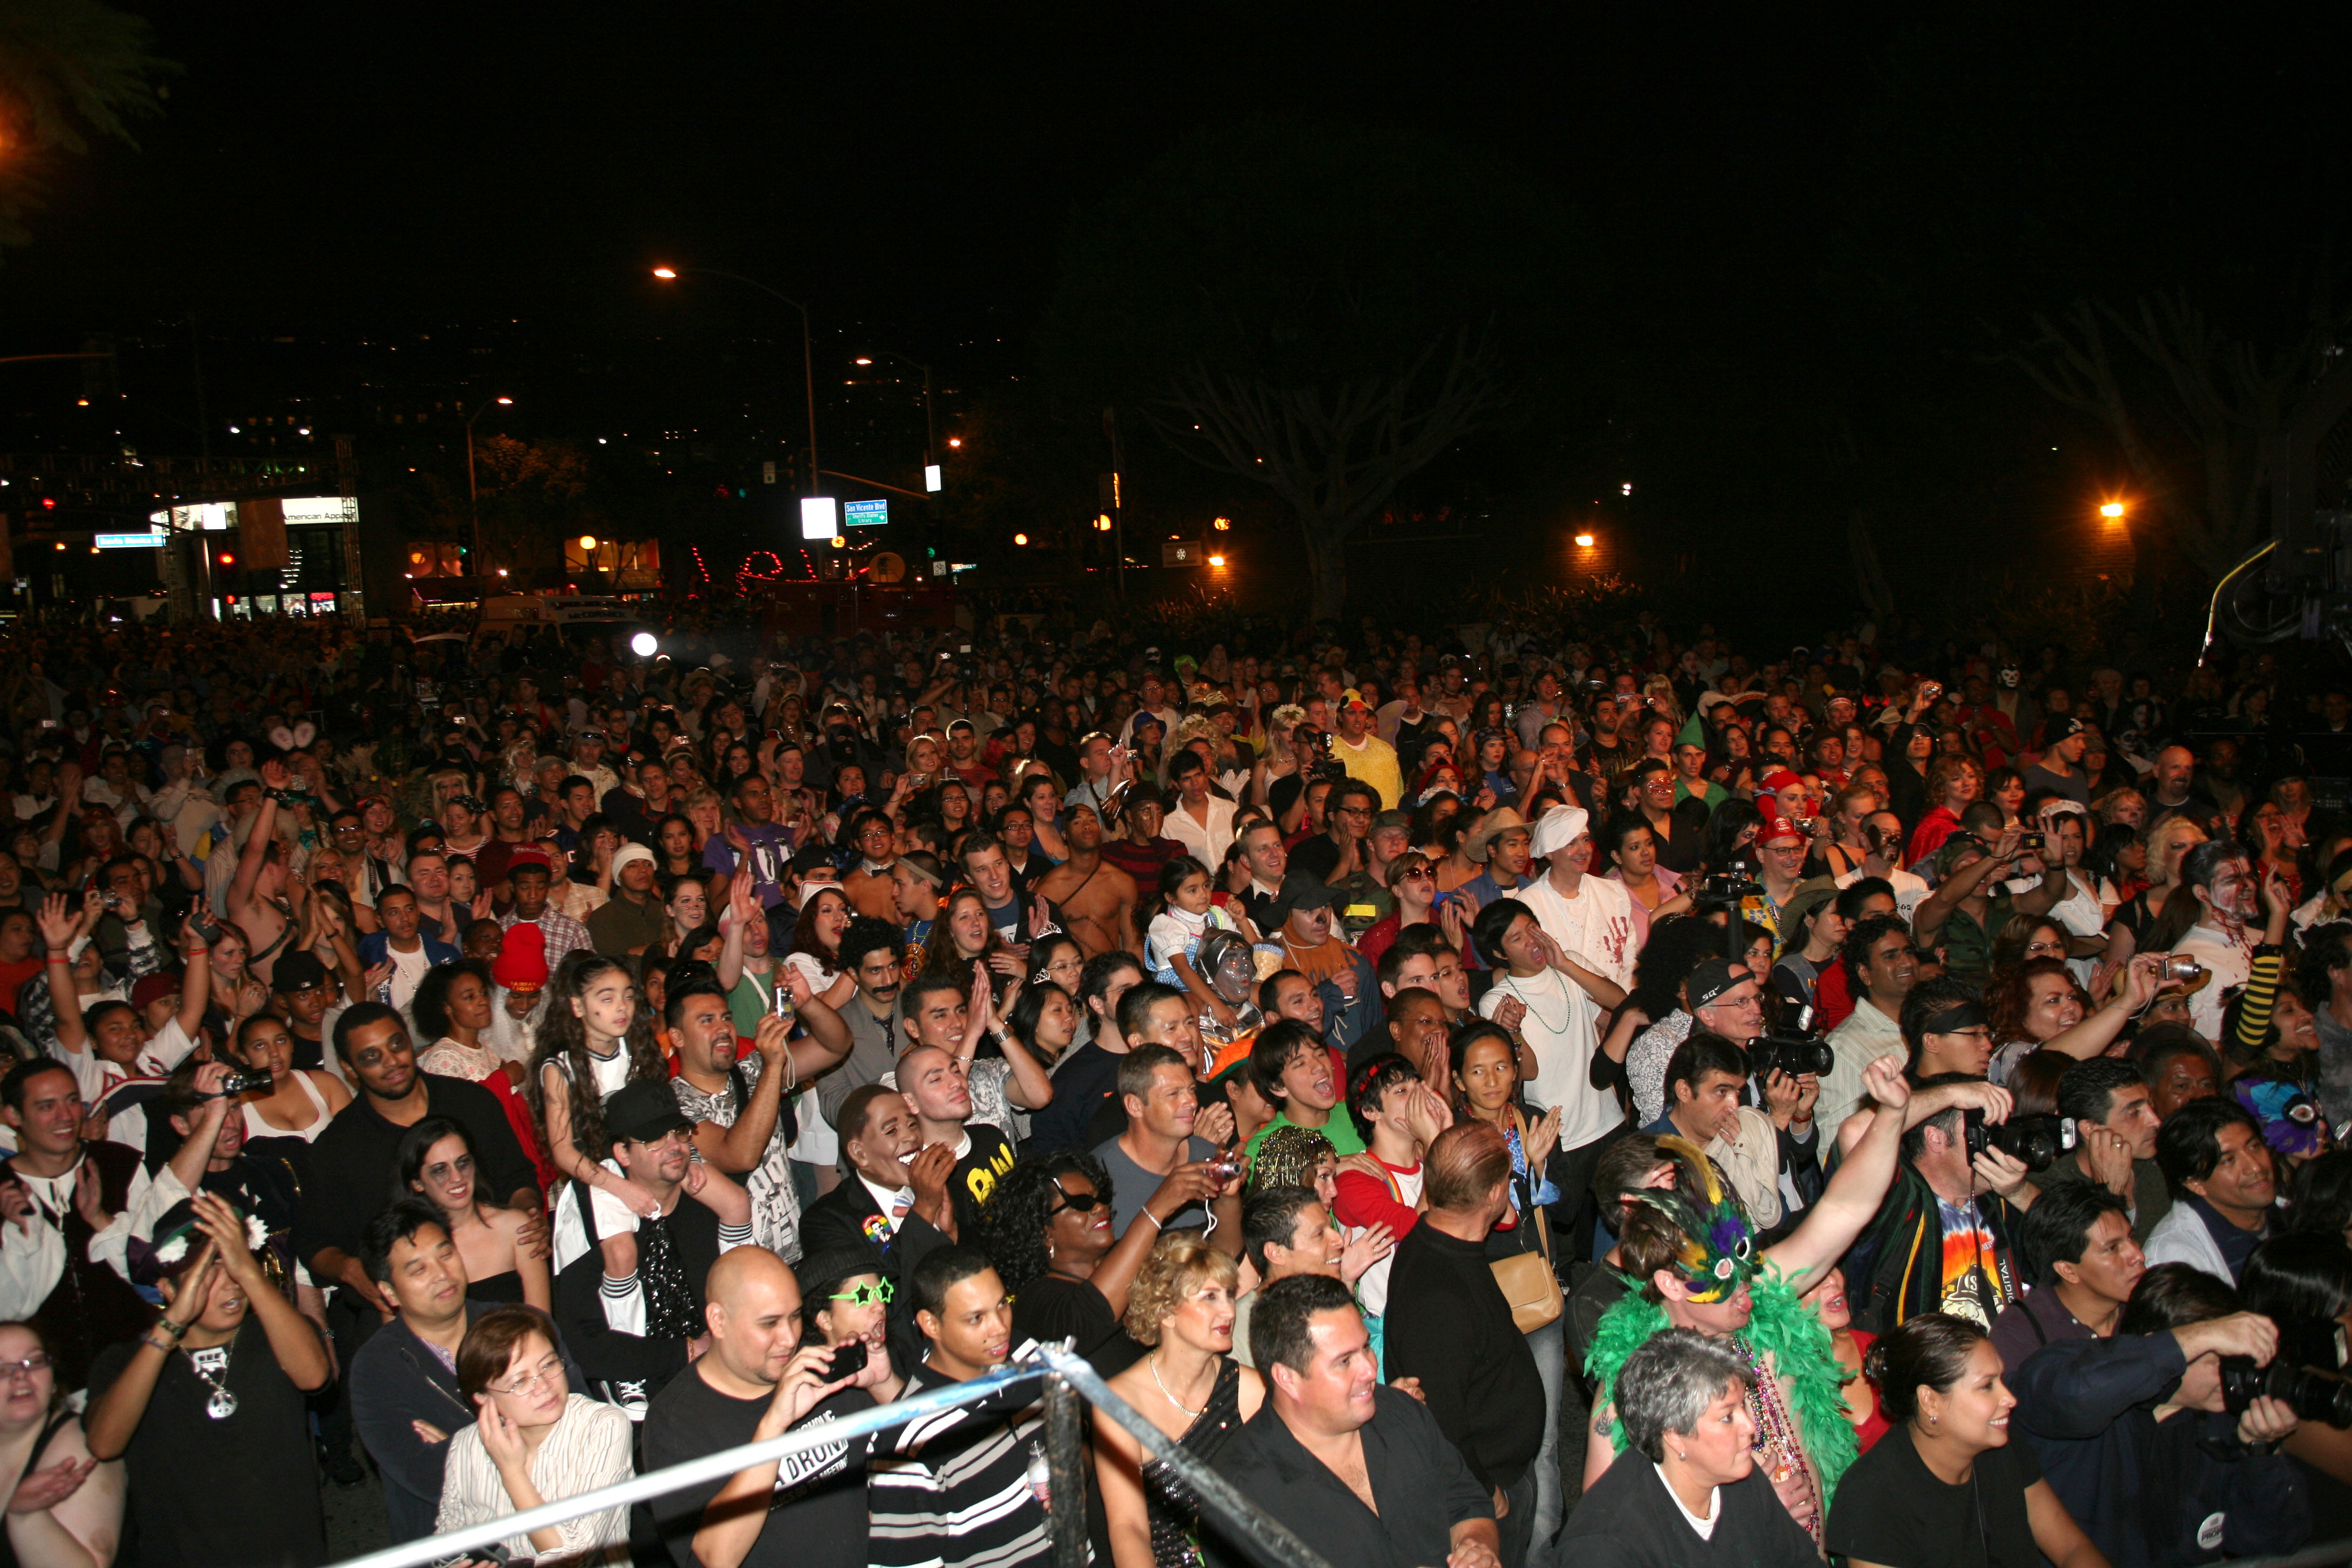 West Hollywood to Roll Out the 'Dead Carpet' for 500,000 Revelers ...